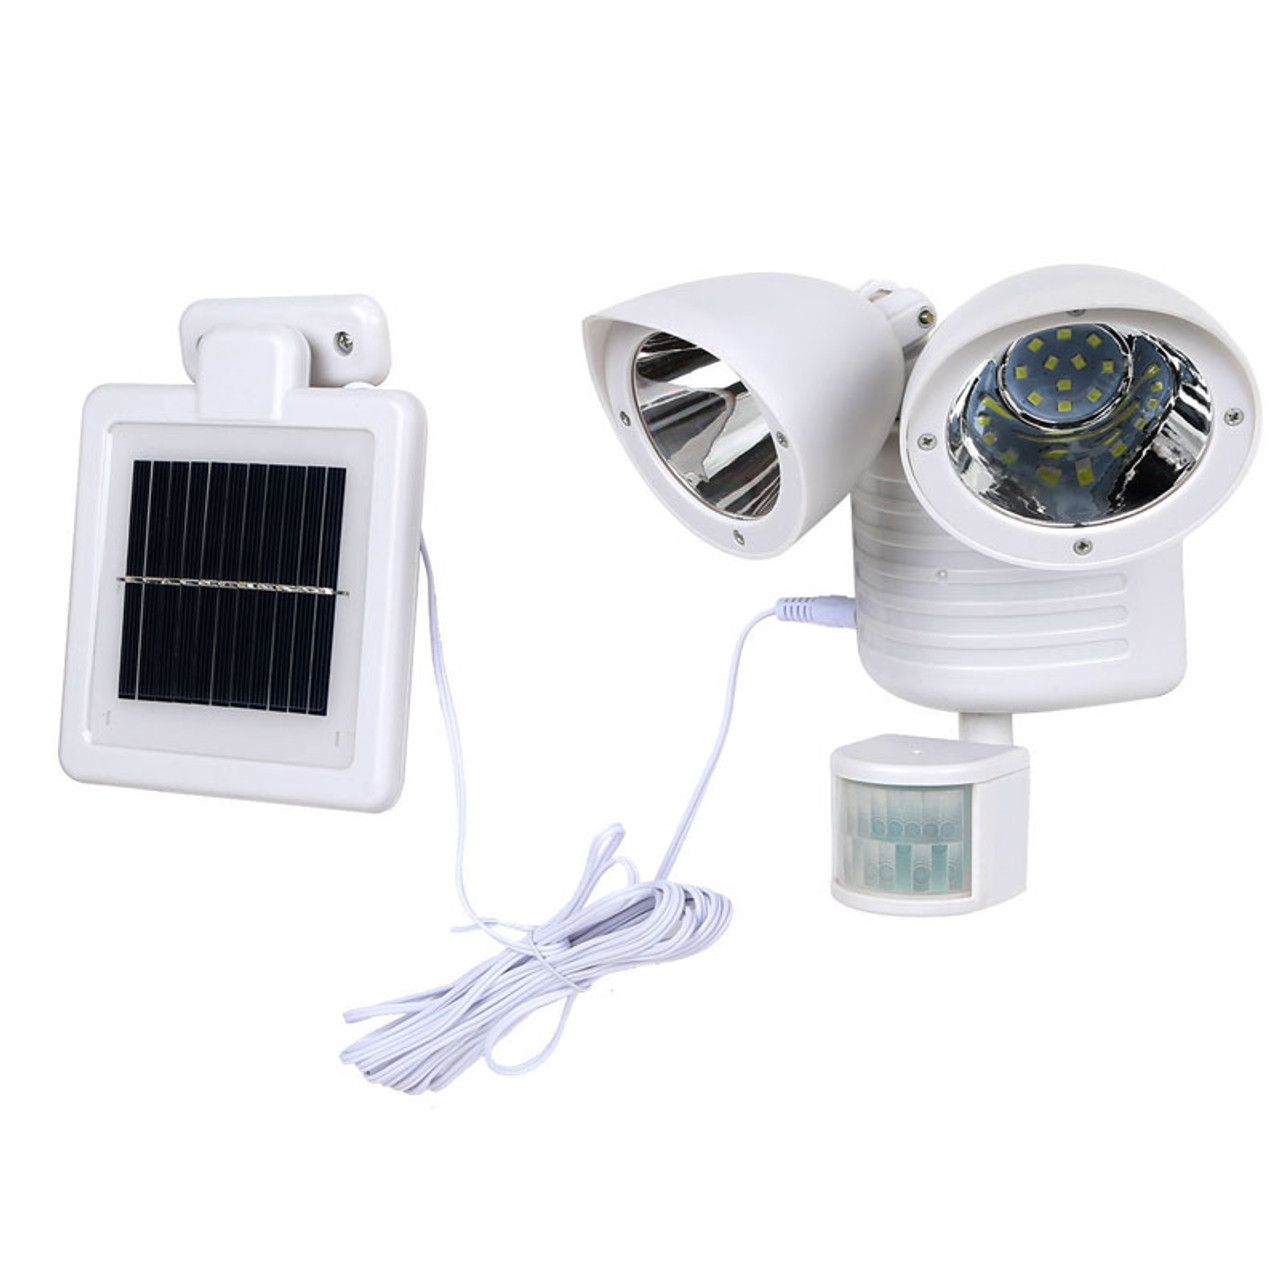 Led Solar Outdoor Security Twin Head Floodlight 3 Watts With Light Sensor Solar Charger Motion Activated Ip65 5000 Kelvin 5 Year Warranty White Led Global Supply